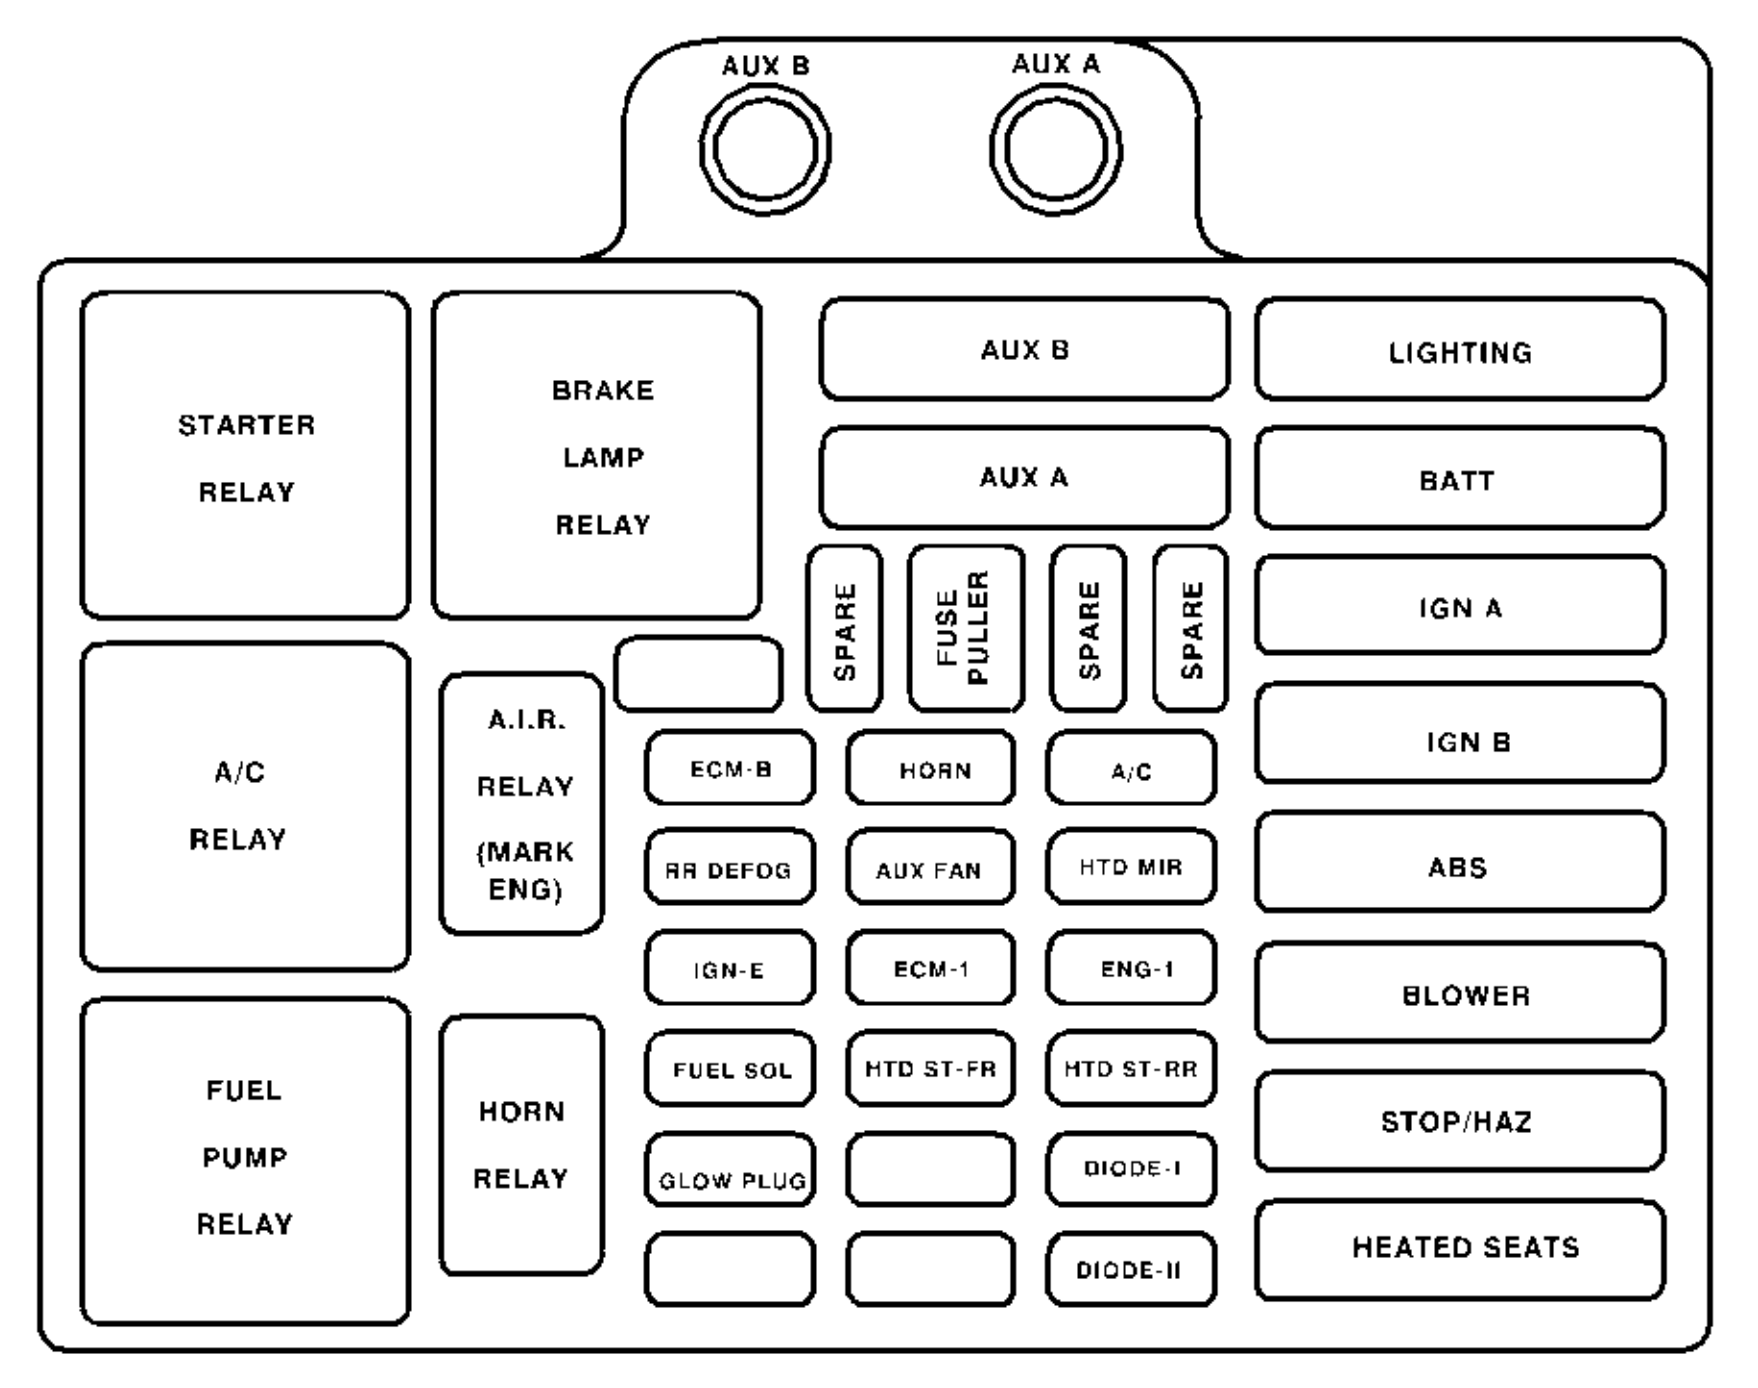 1989 Chevy Silverado Fuse Box Diagram • Wiring Diagram For